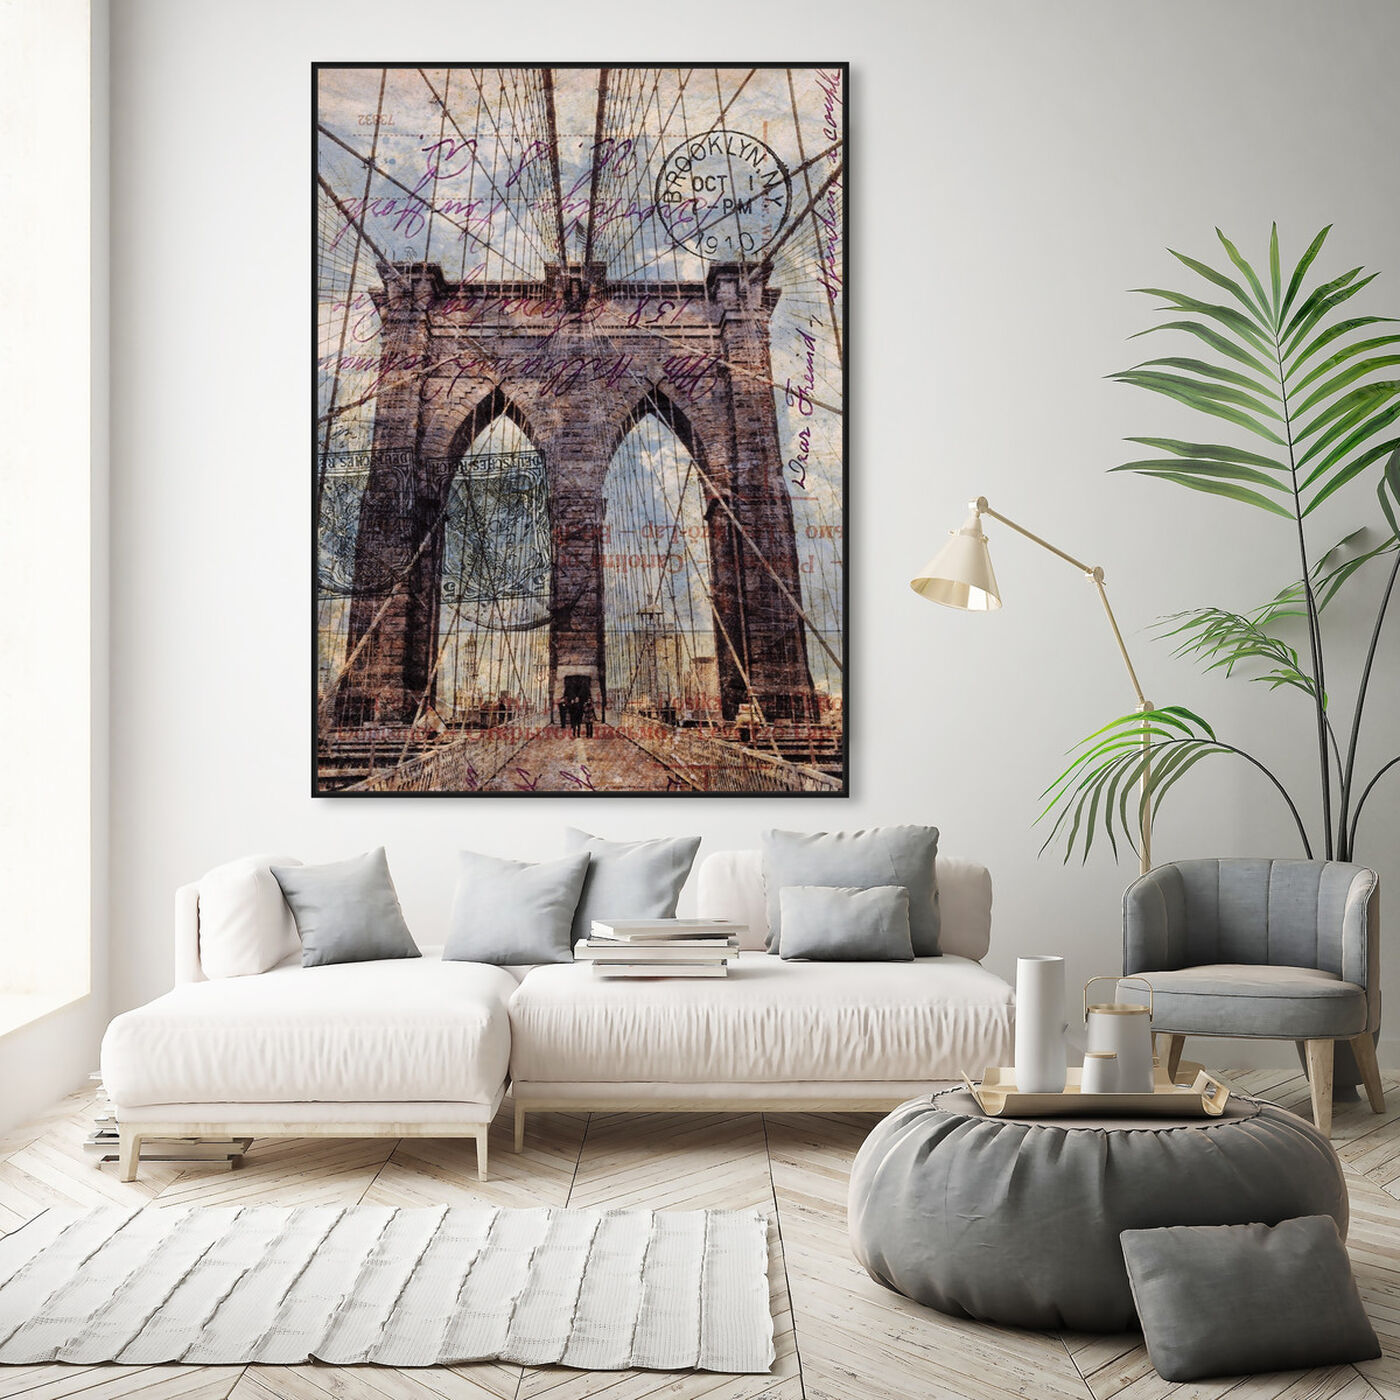 Hanging view of Brooklyn Bridge featuring architecture and buildings and famous bridges art.